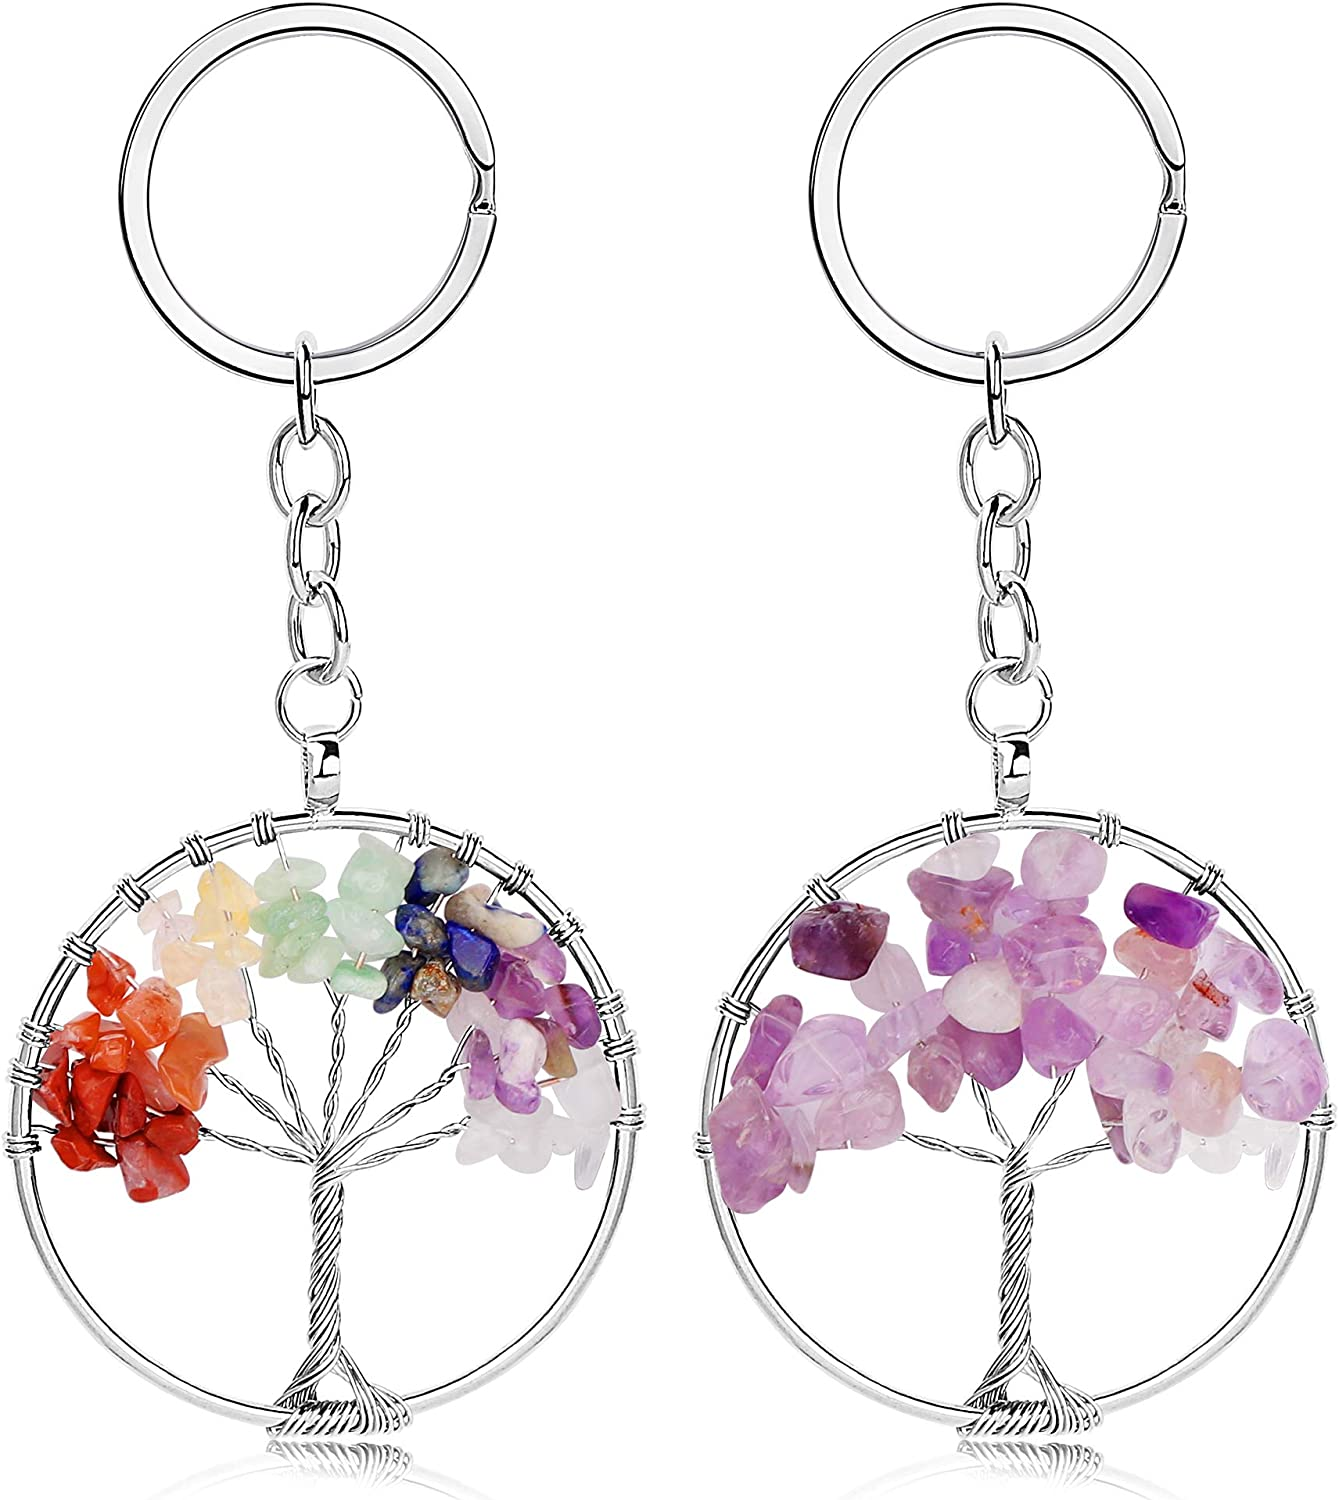 Besteel 2 Pcs Tree of Life Keychain Natural Crystal Stone Amethyst Handmade DIY Keyring